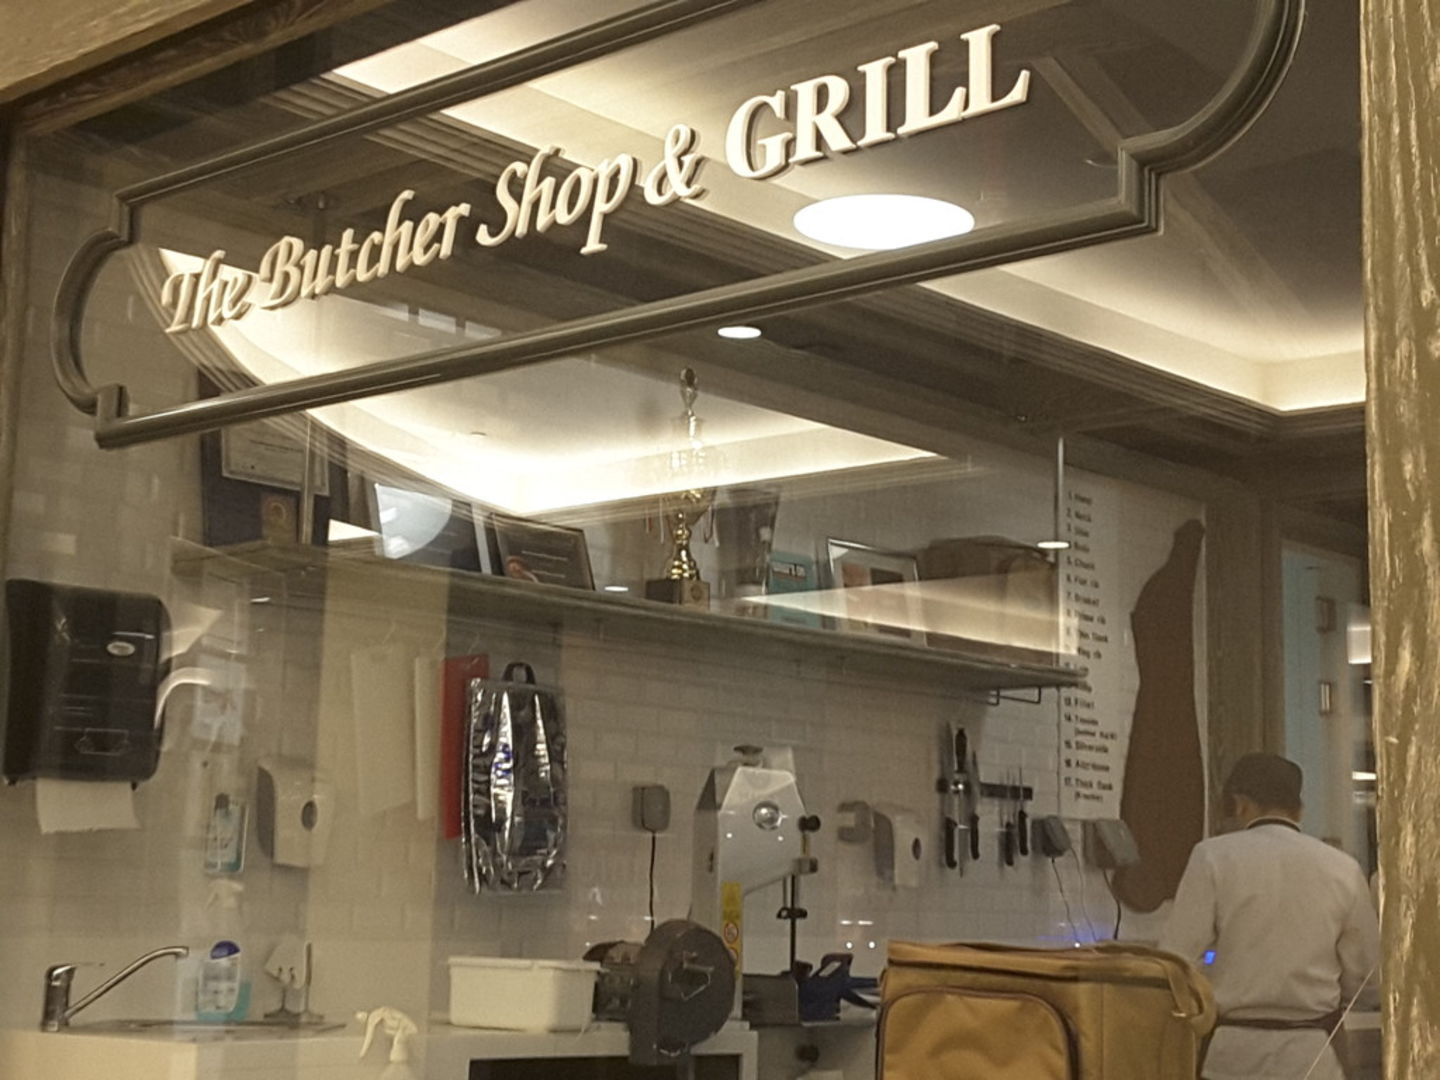 The Butcher Shop & Grill, (Restaurants & Bars) in Al Barsha